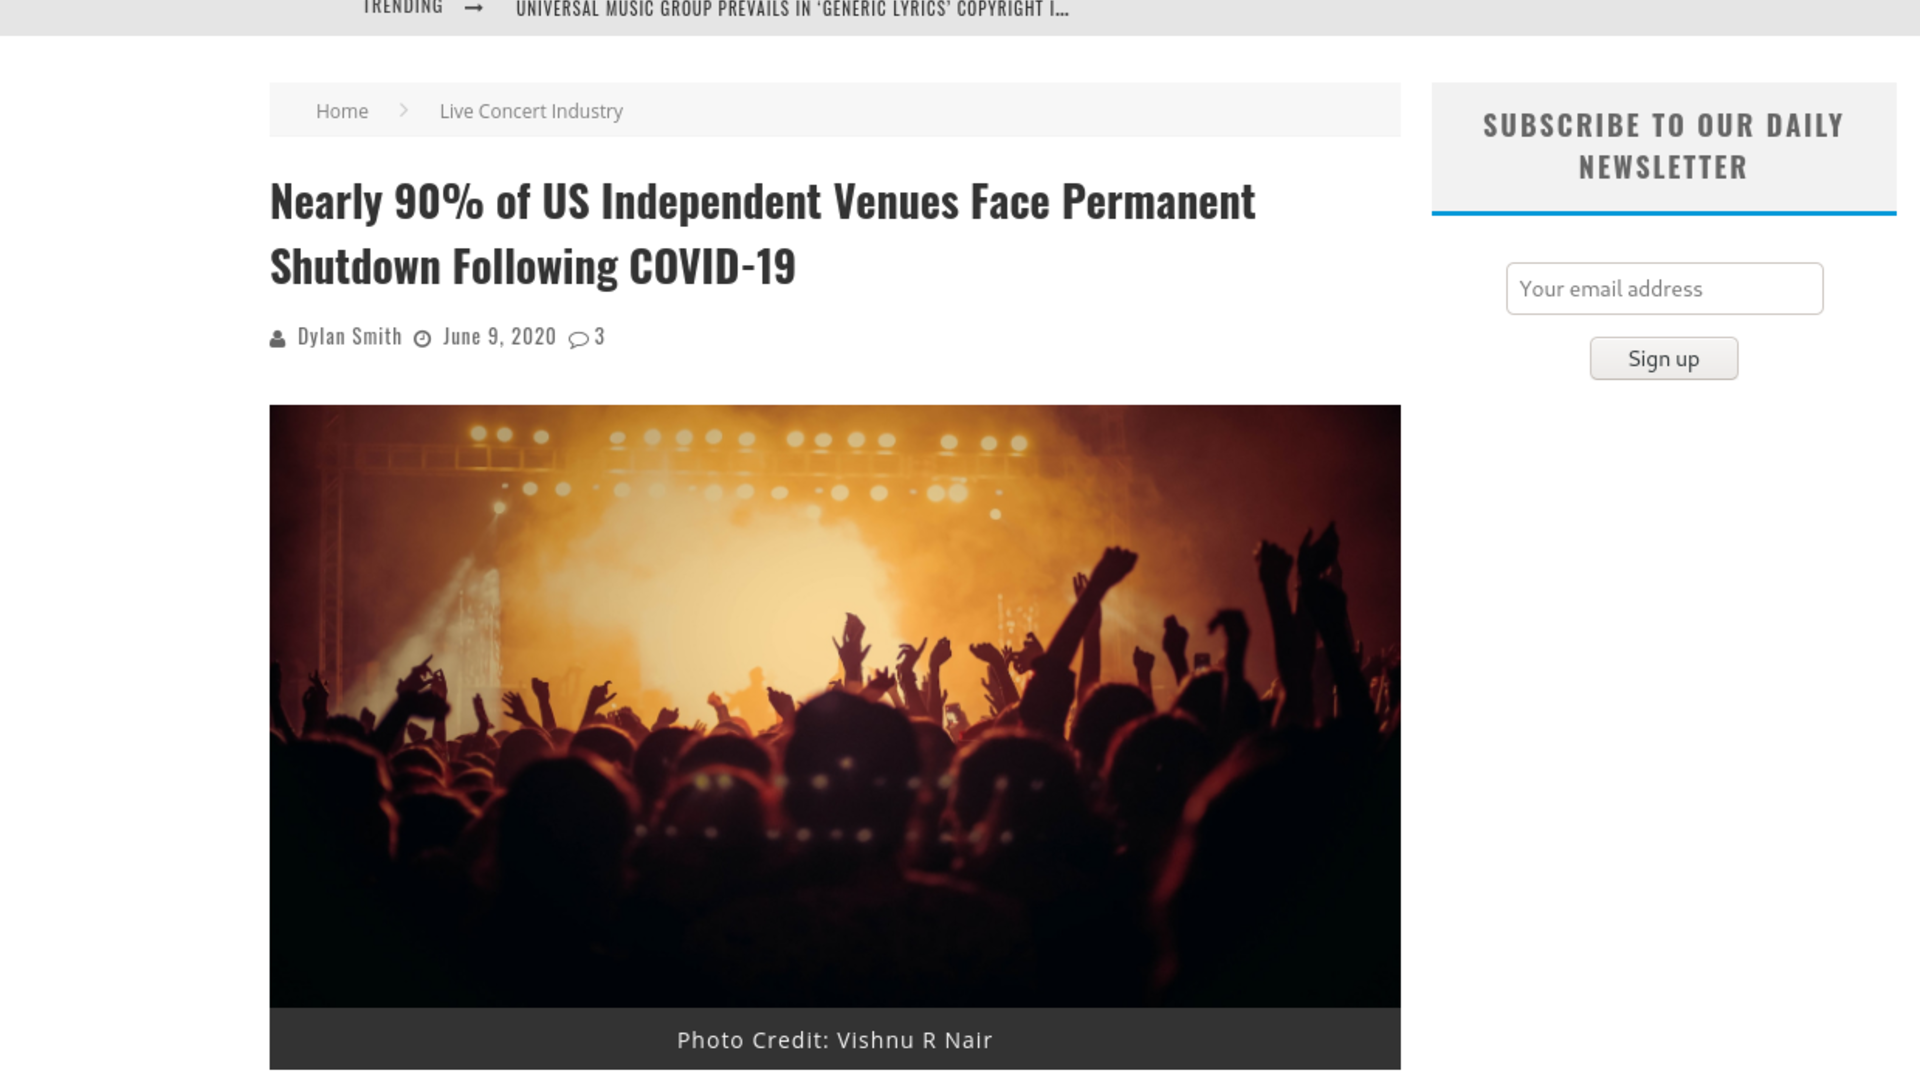 Fairness Rocks News Nearly 90% of US Independent Venues Face Permanent Shutdown Following COVID-19